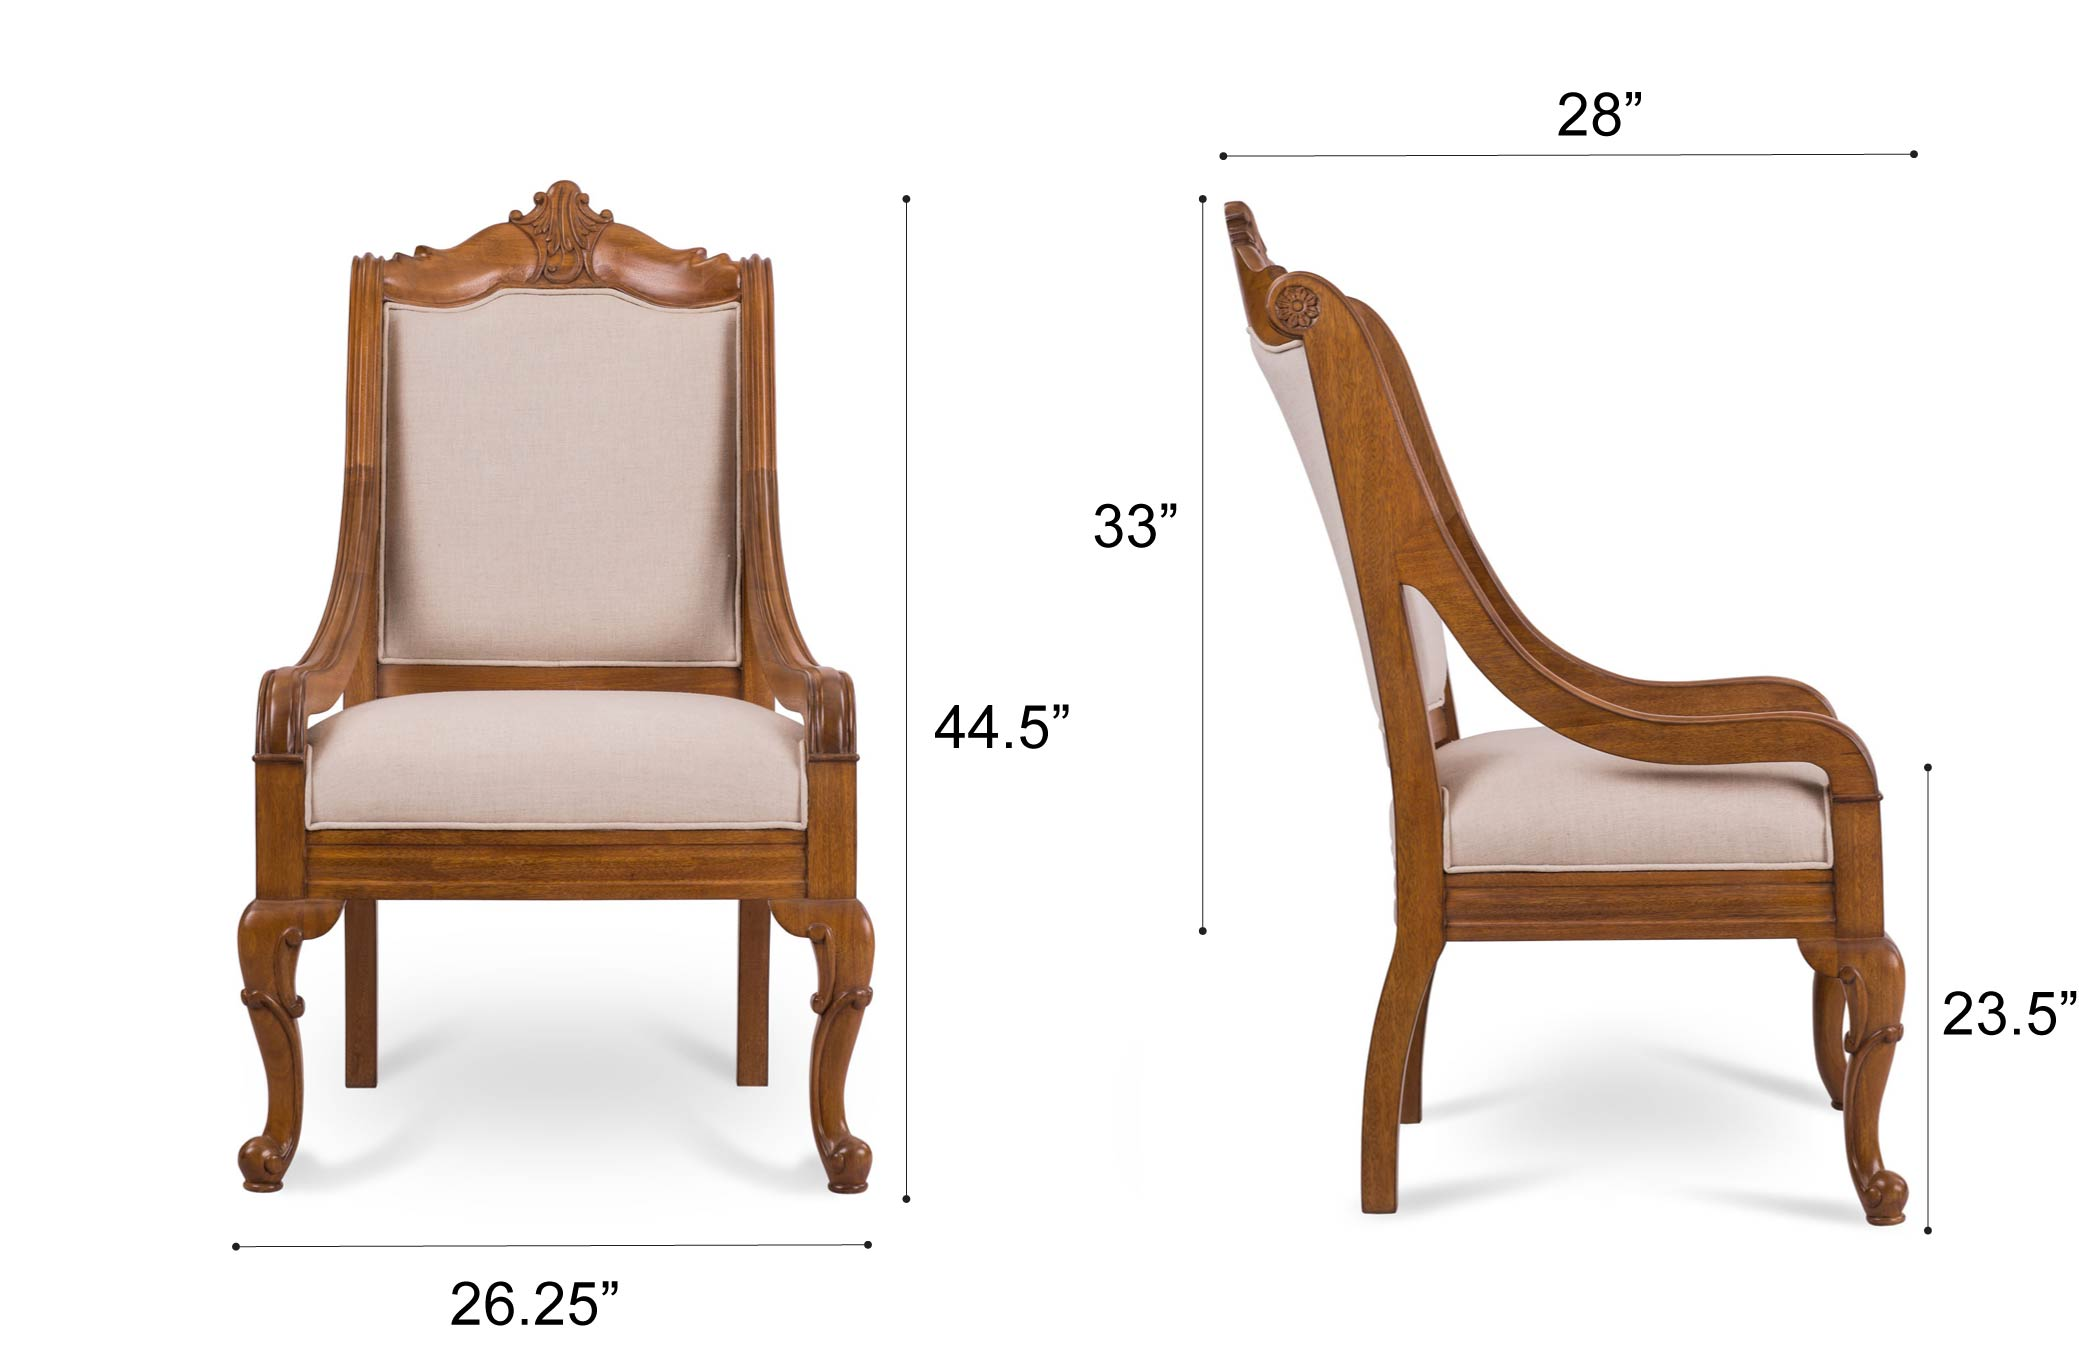 Dowel Furniture Lola Chair Dimensions